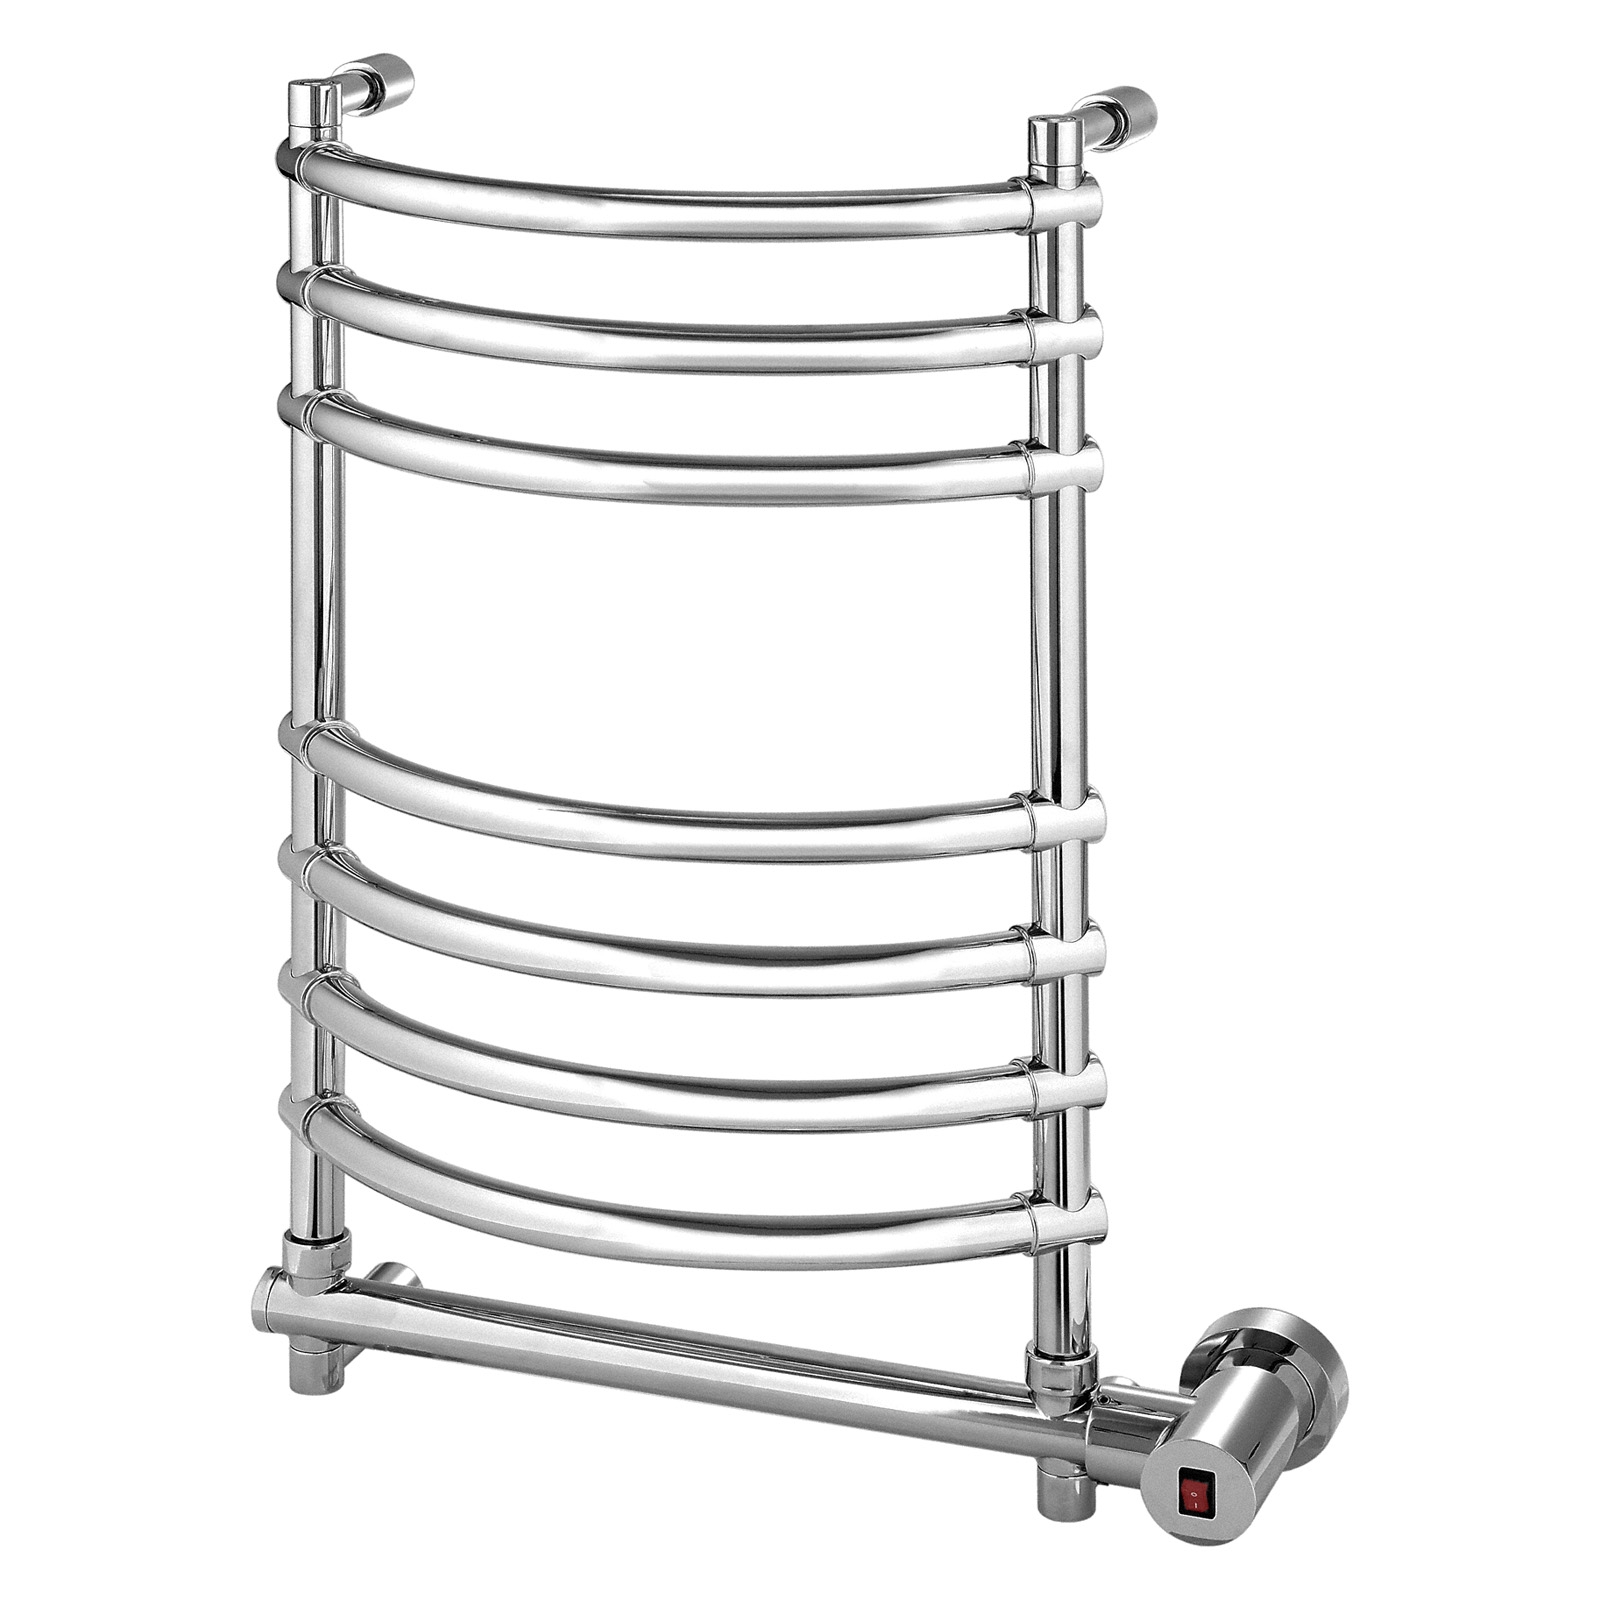 Decorative Towel Warmers : Mr steam w wall mounted towel warmer warmers